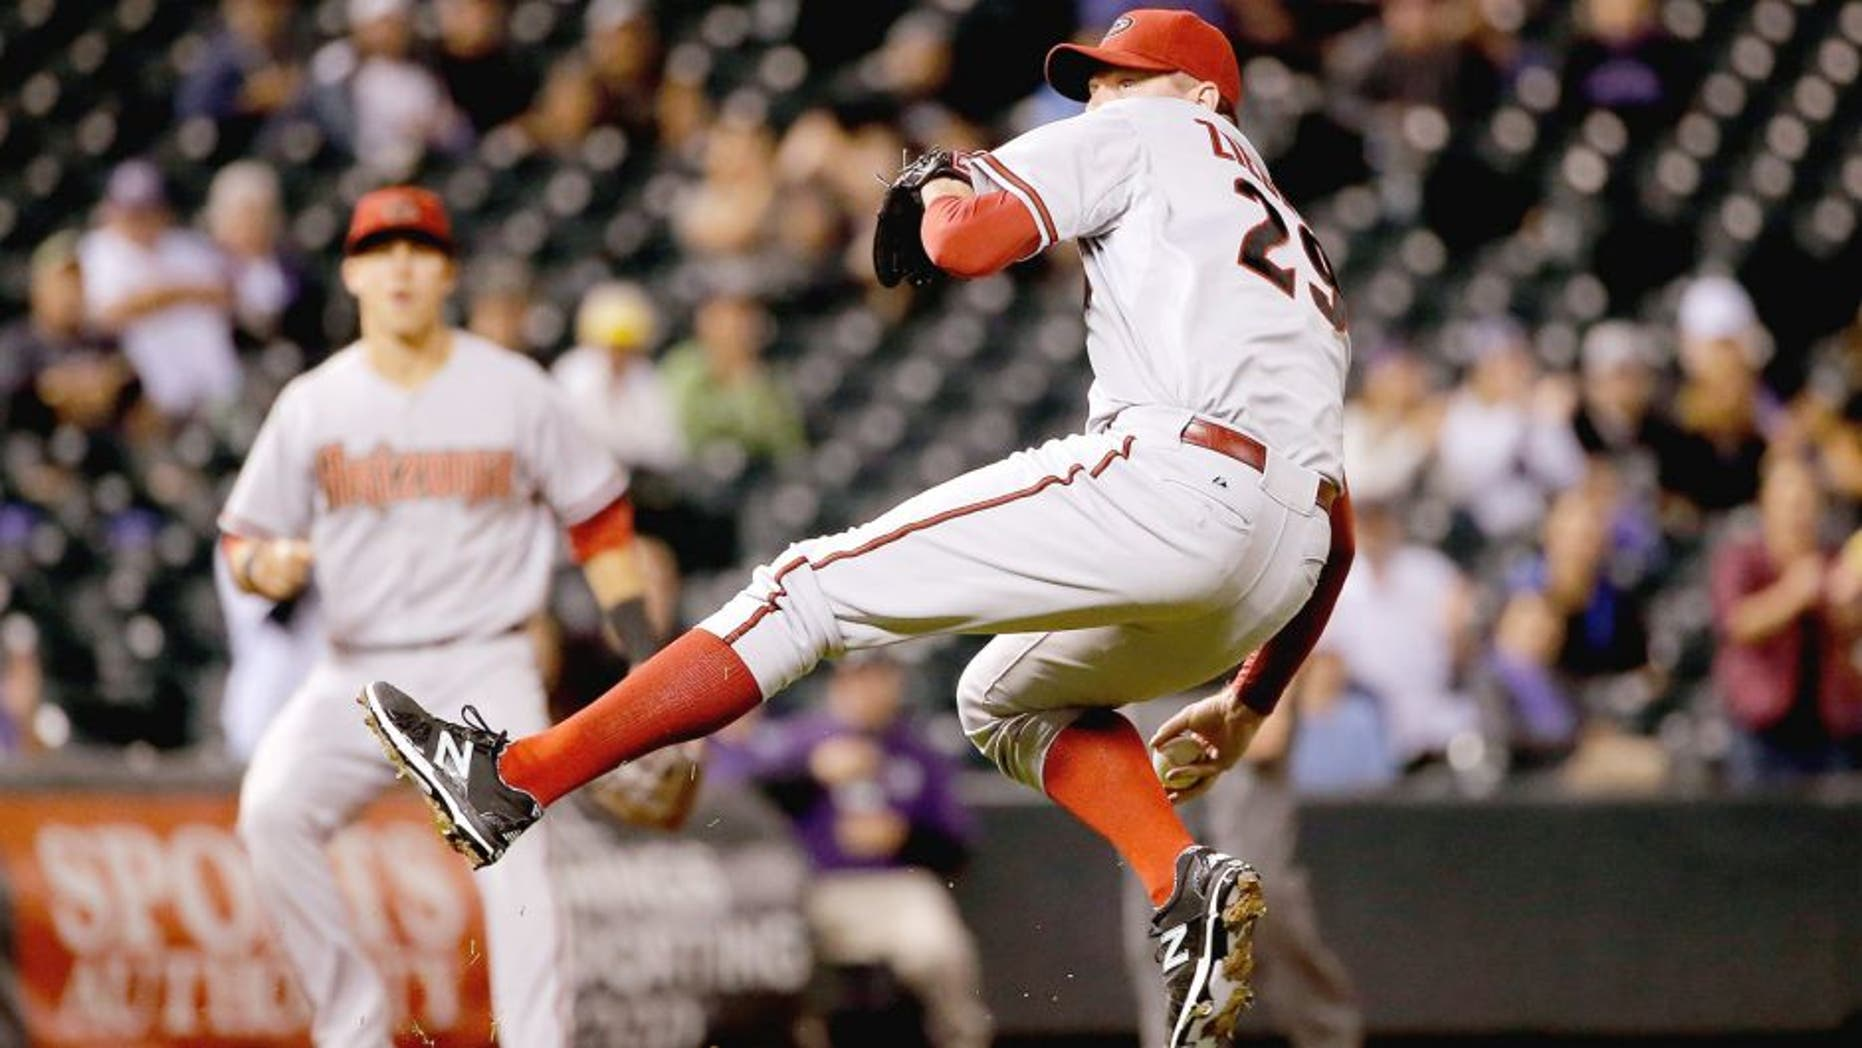 DENVER, CO - AUGUST 31: Relief pitcher Brad Ziegler #29 of the Arizona Diamondbacks makes a throwing error after fielding a ground ball by DJ LeMahieu #9 of the Colorado Rockies in the ninth inning at Coors Field on August 31, 2015 in Denver, Colorado. Ziegler would collect the loss as the Rockies defeated the Diamondbacks 5-4. (Photo by Doug Pensinger/Getty Images)